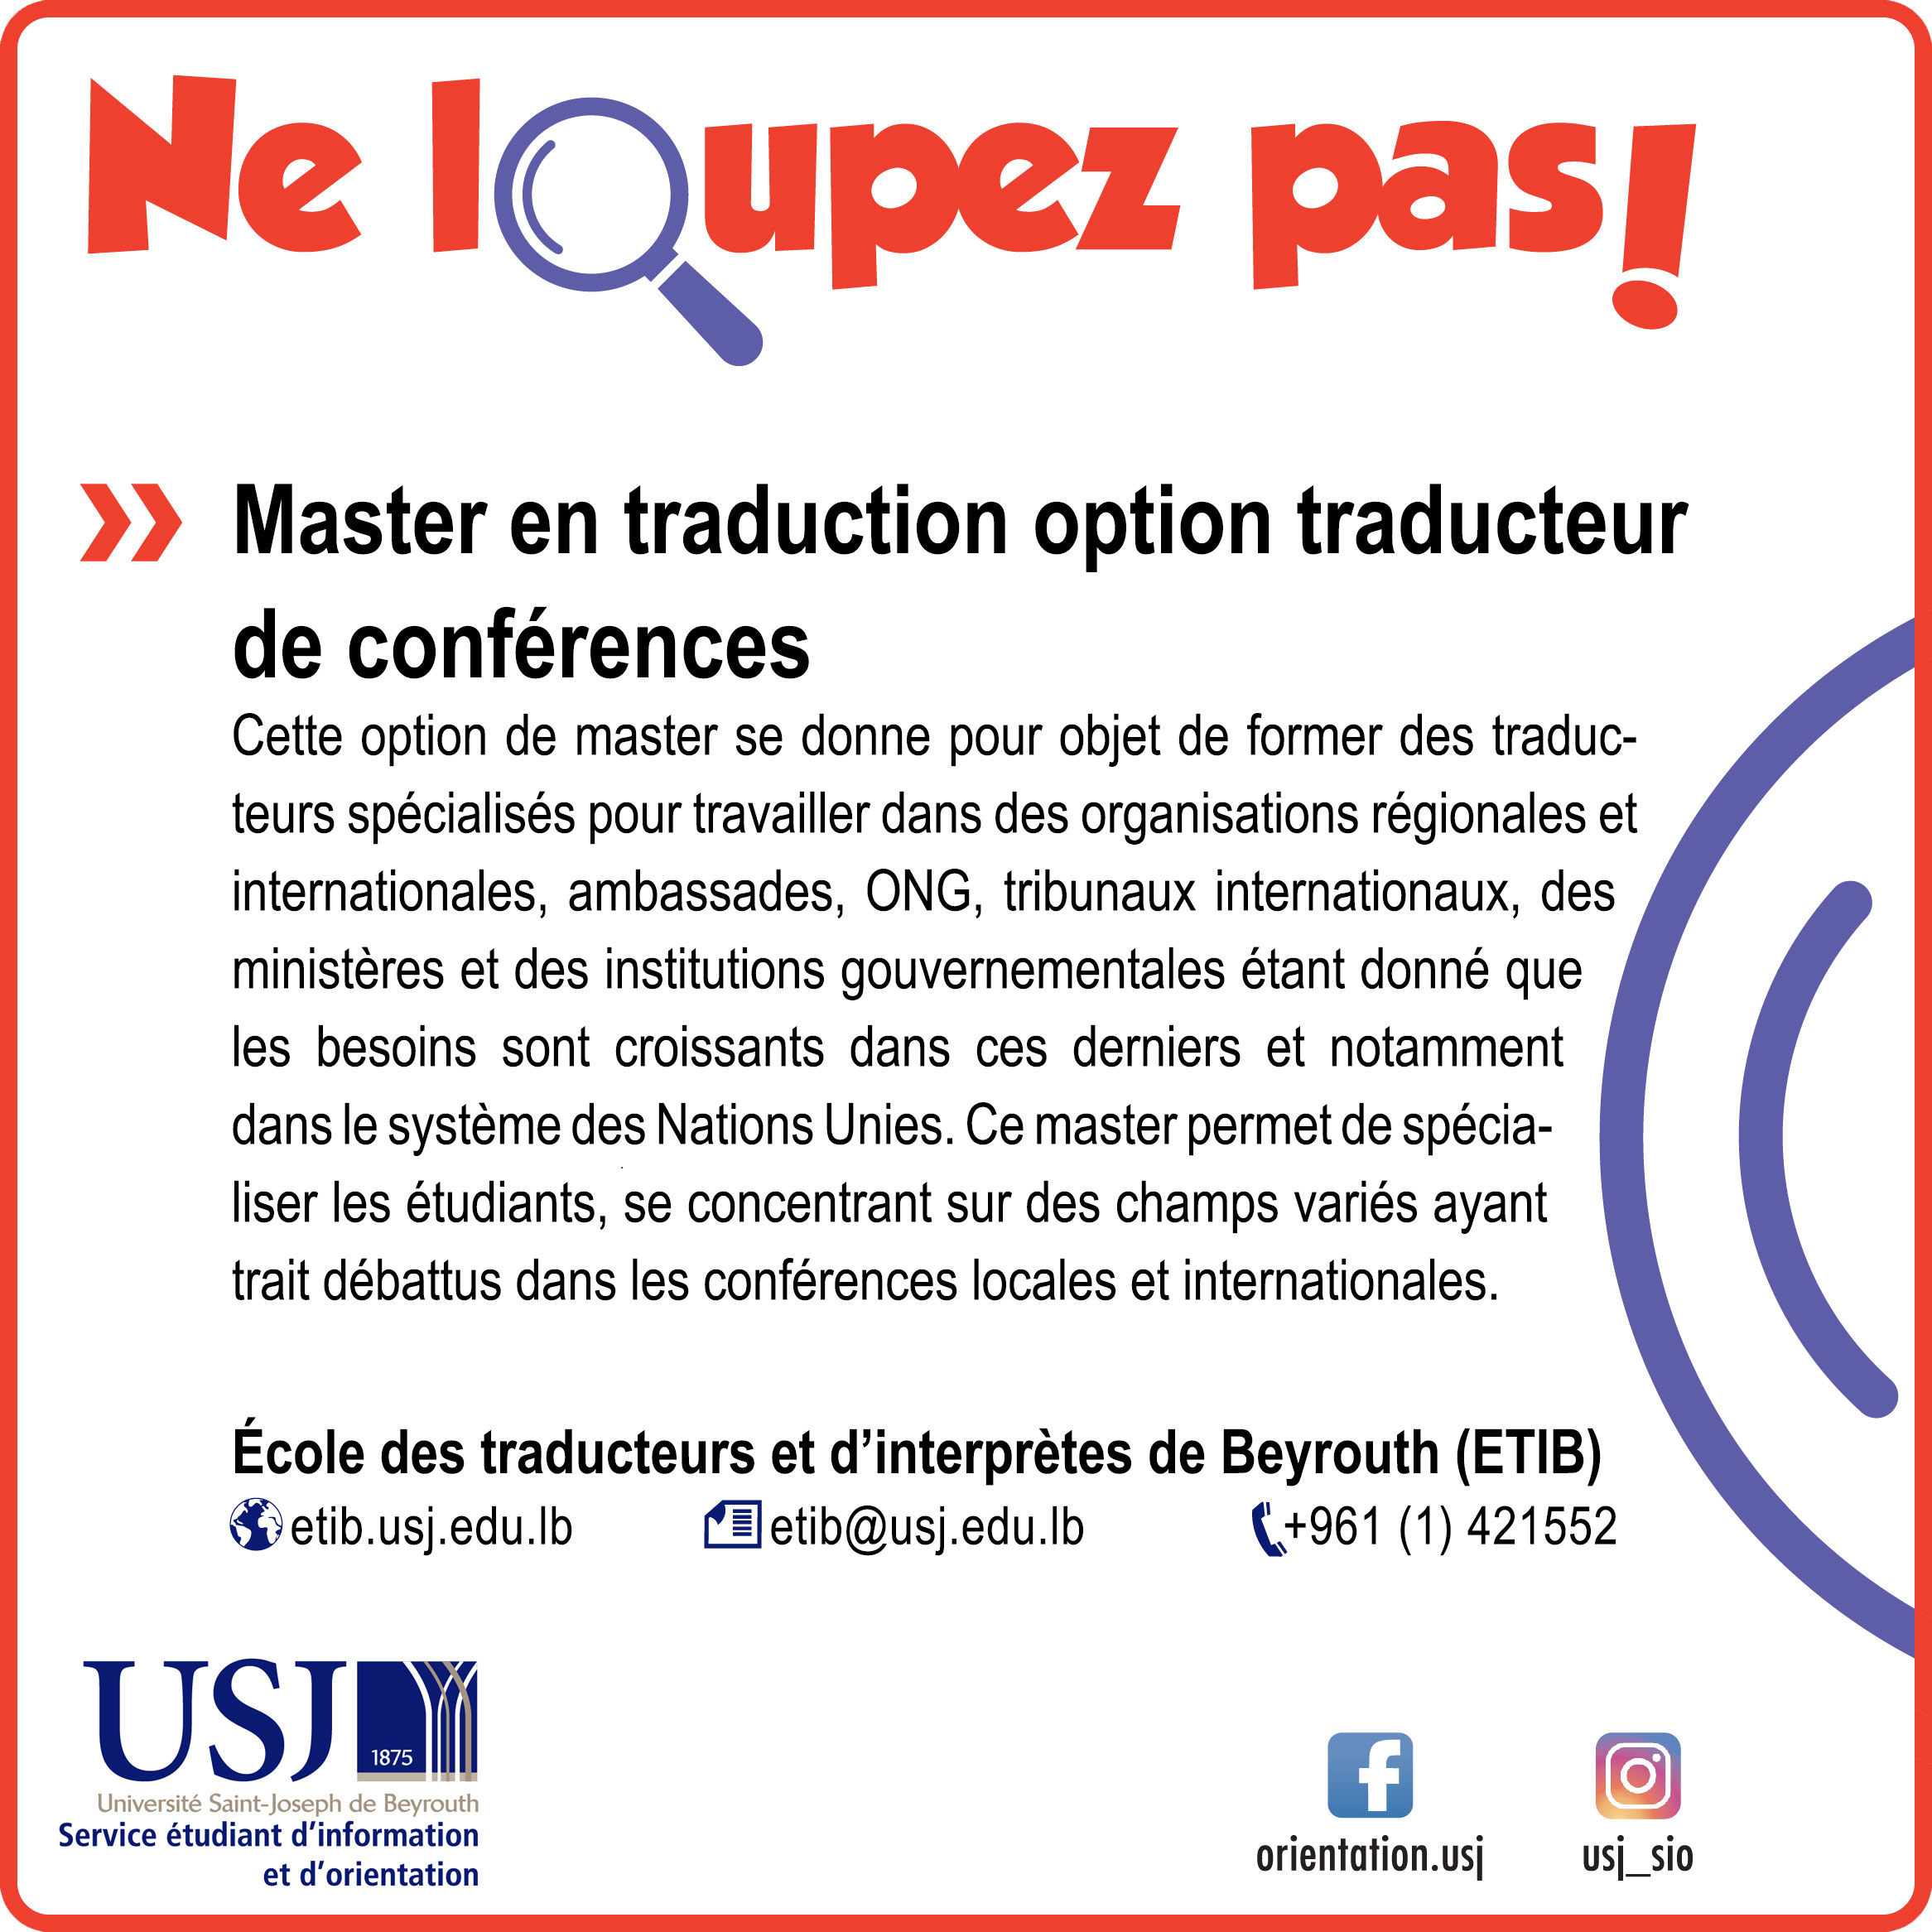 Master en traduction option conférences